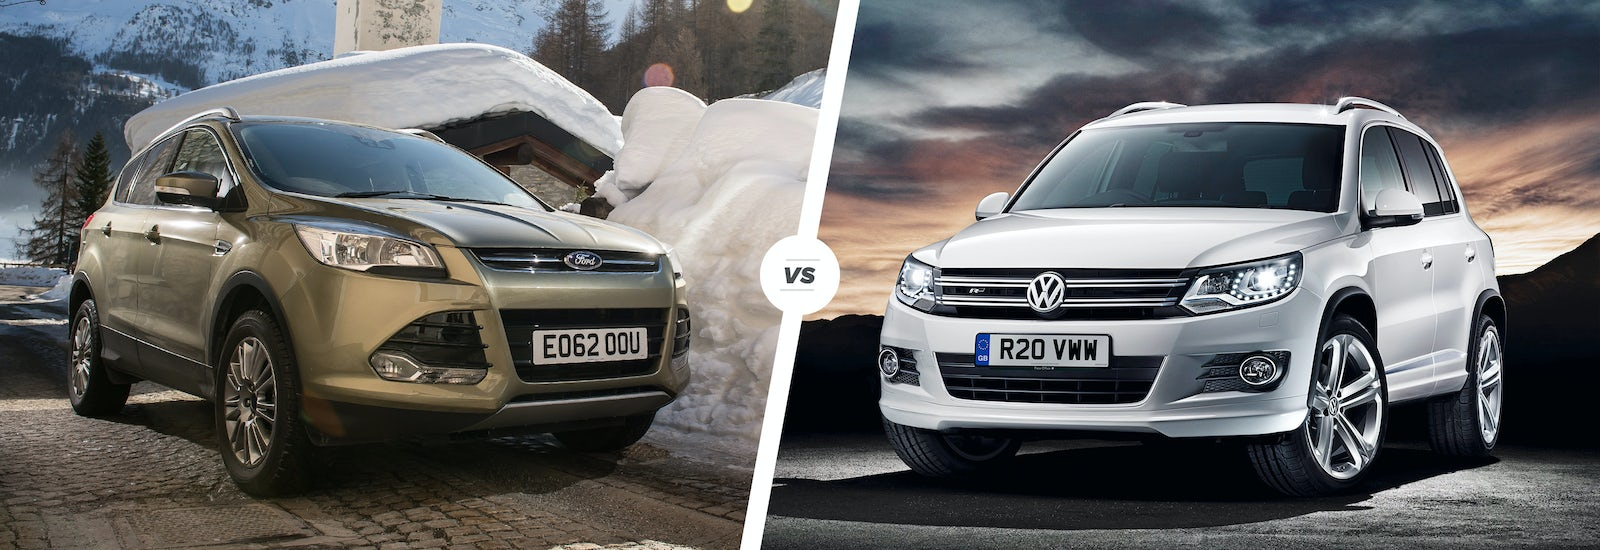 Ford Kuga Vs Vw Tiguan Crossovers Compared Carwow 2014 Focus Stereo Upgrade Volkswagen Compact